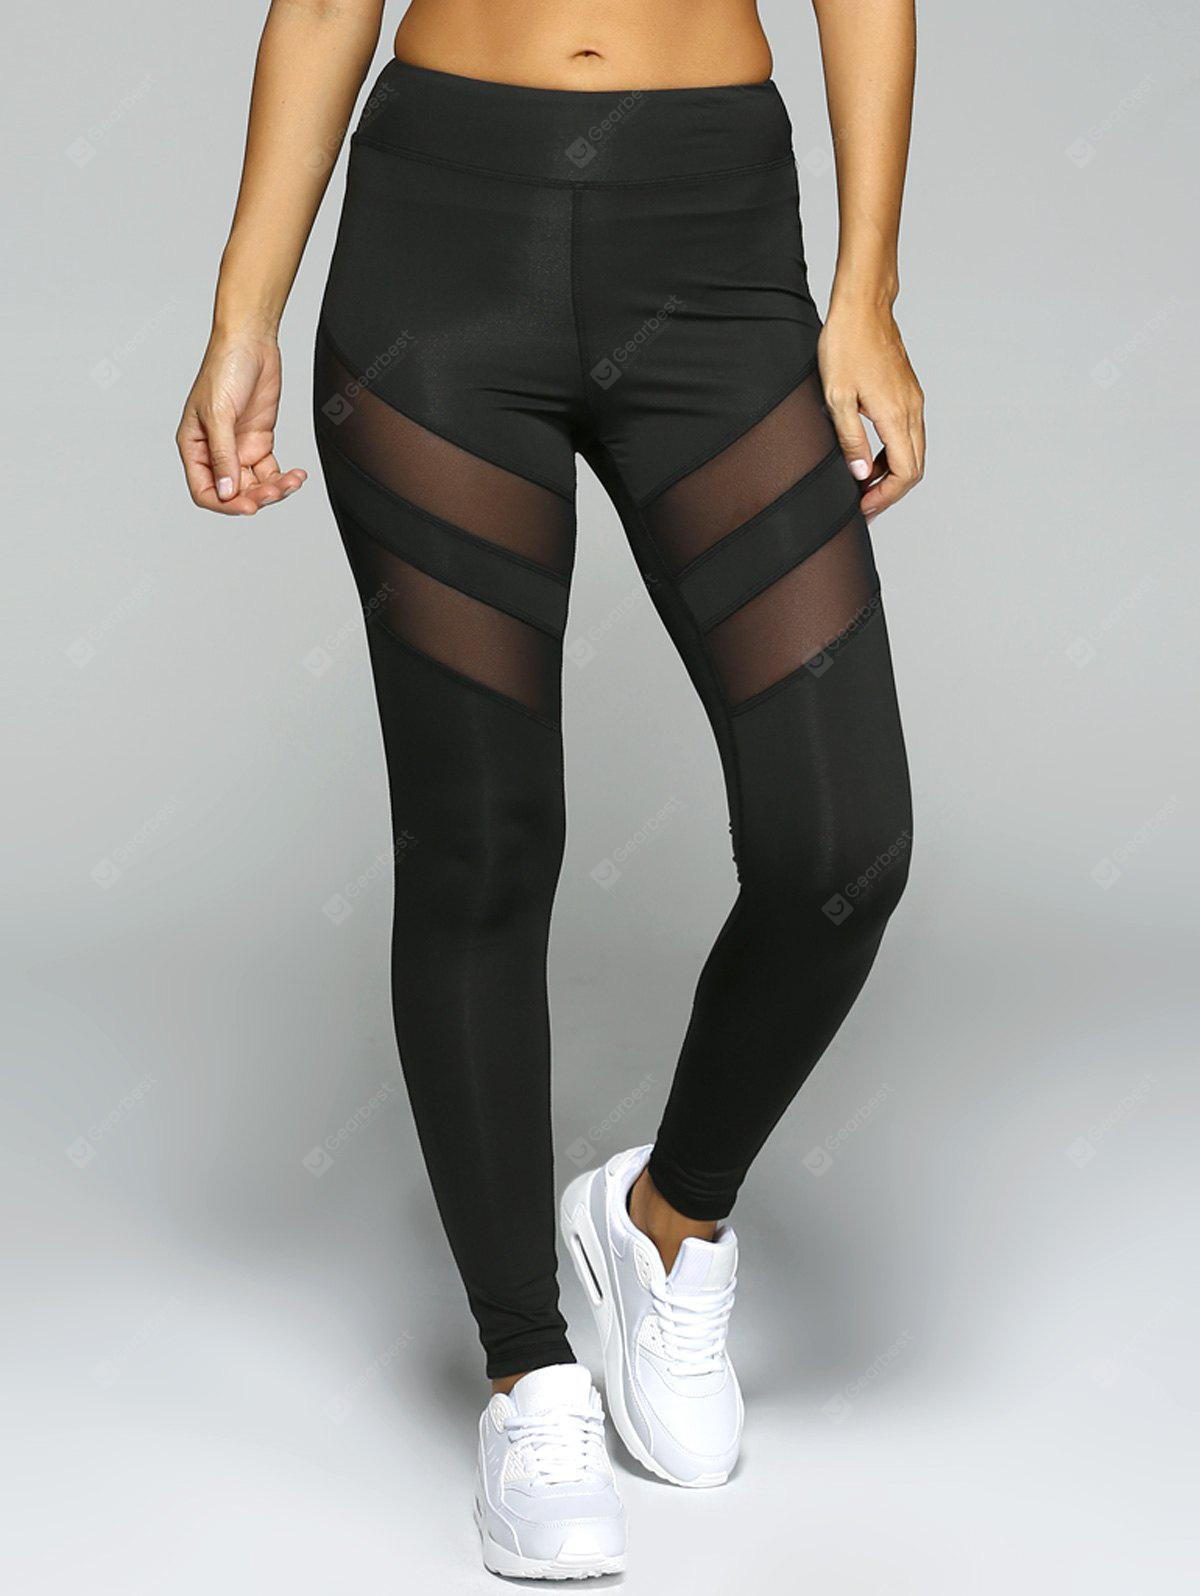 See-Through Tight Sport Running Leggings